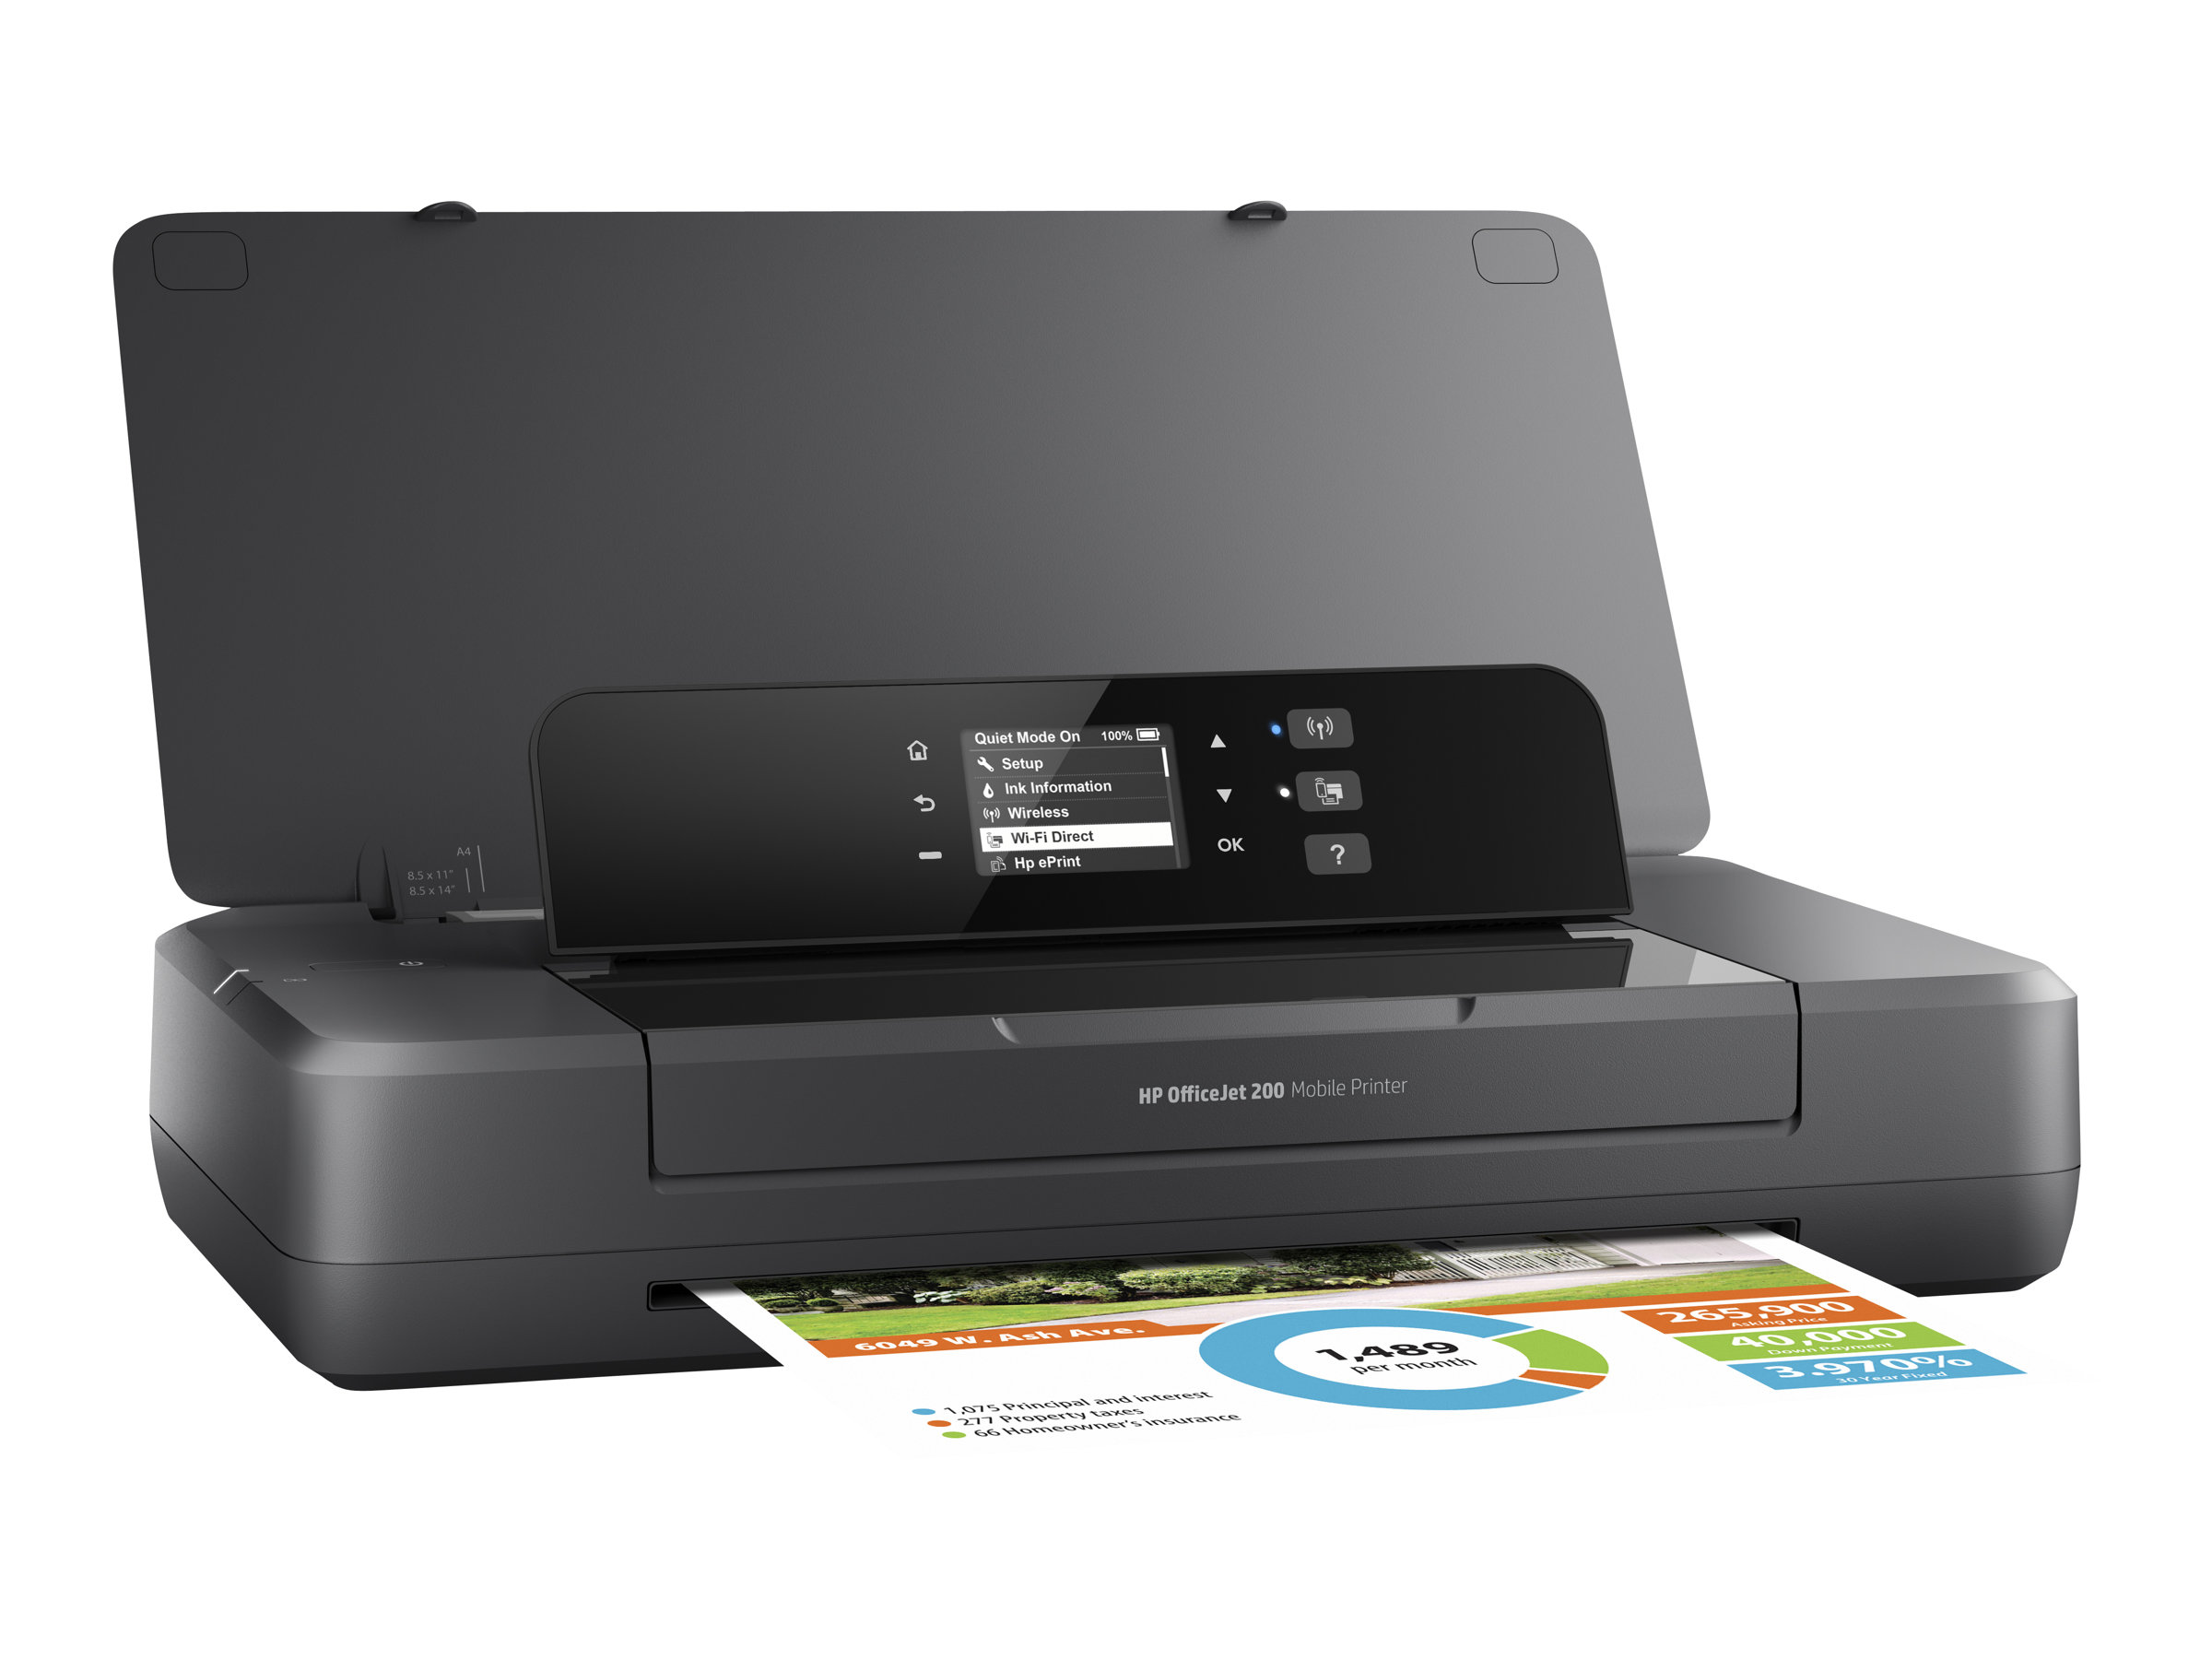 hp officejet 200 mobile printer imprimante portable. Black Bedroom Furniture Sets. Home Design Ideas